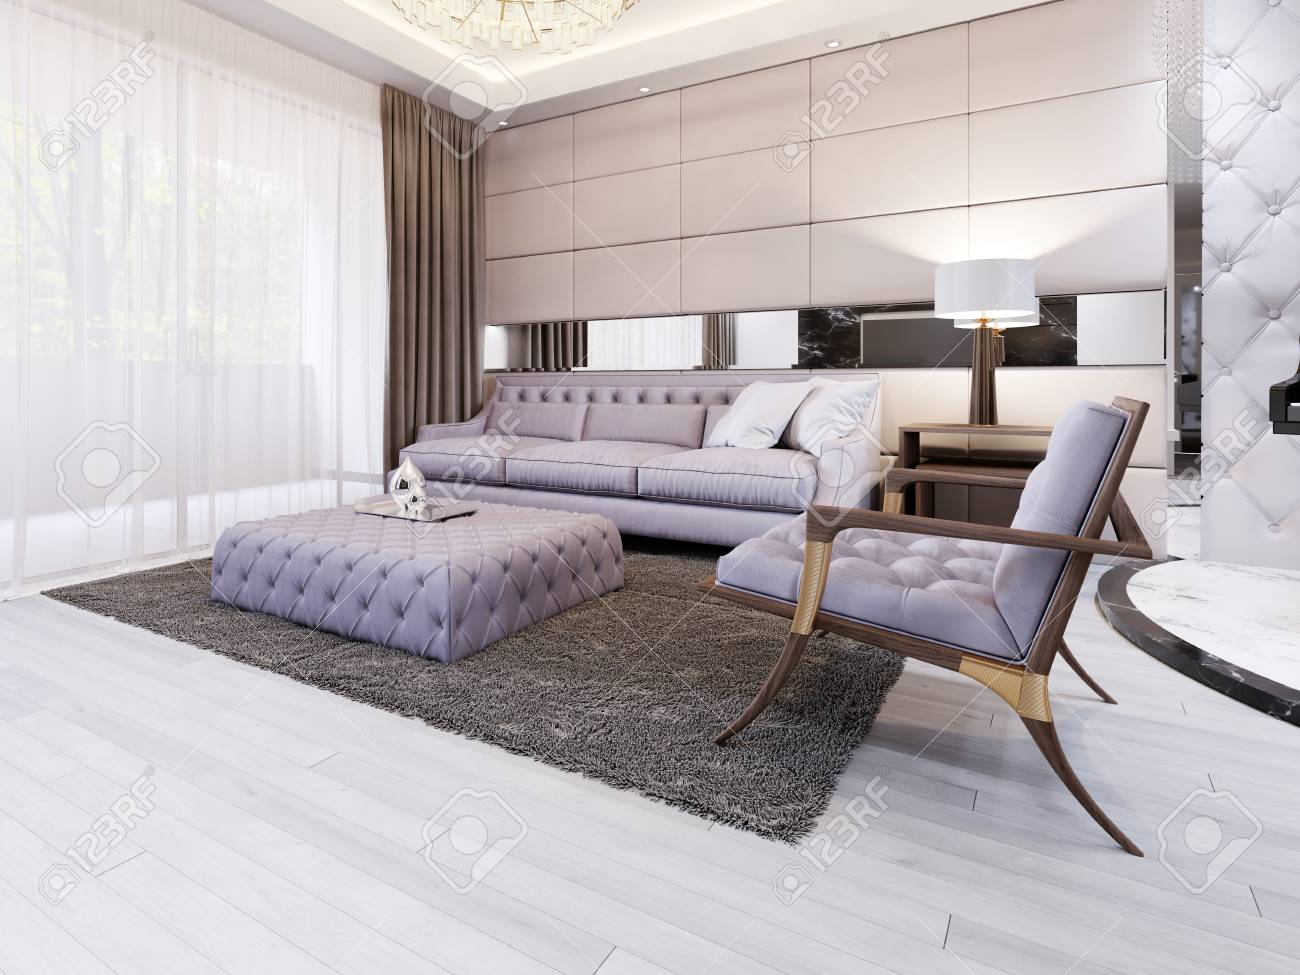 Luxury And Modern Living Room With Quilted Sofa And Chair 3d Stock Photo Picture And Royalty Free Image Image 113380655